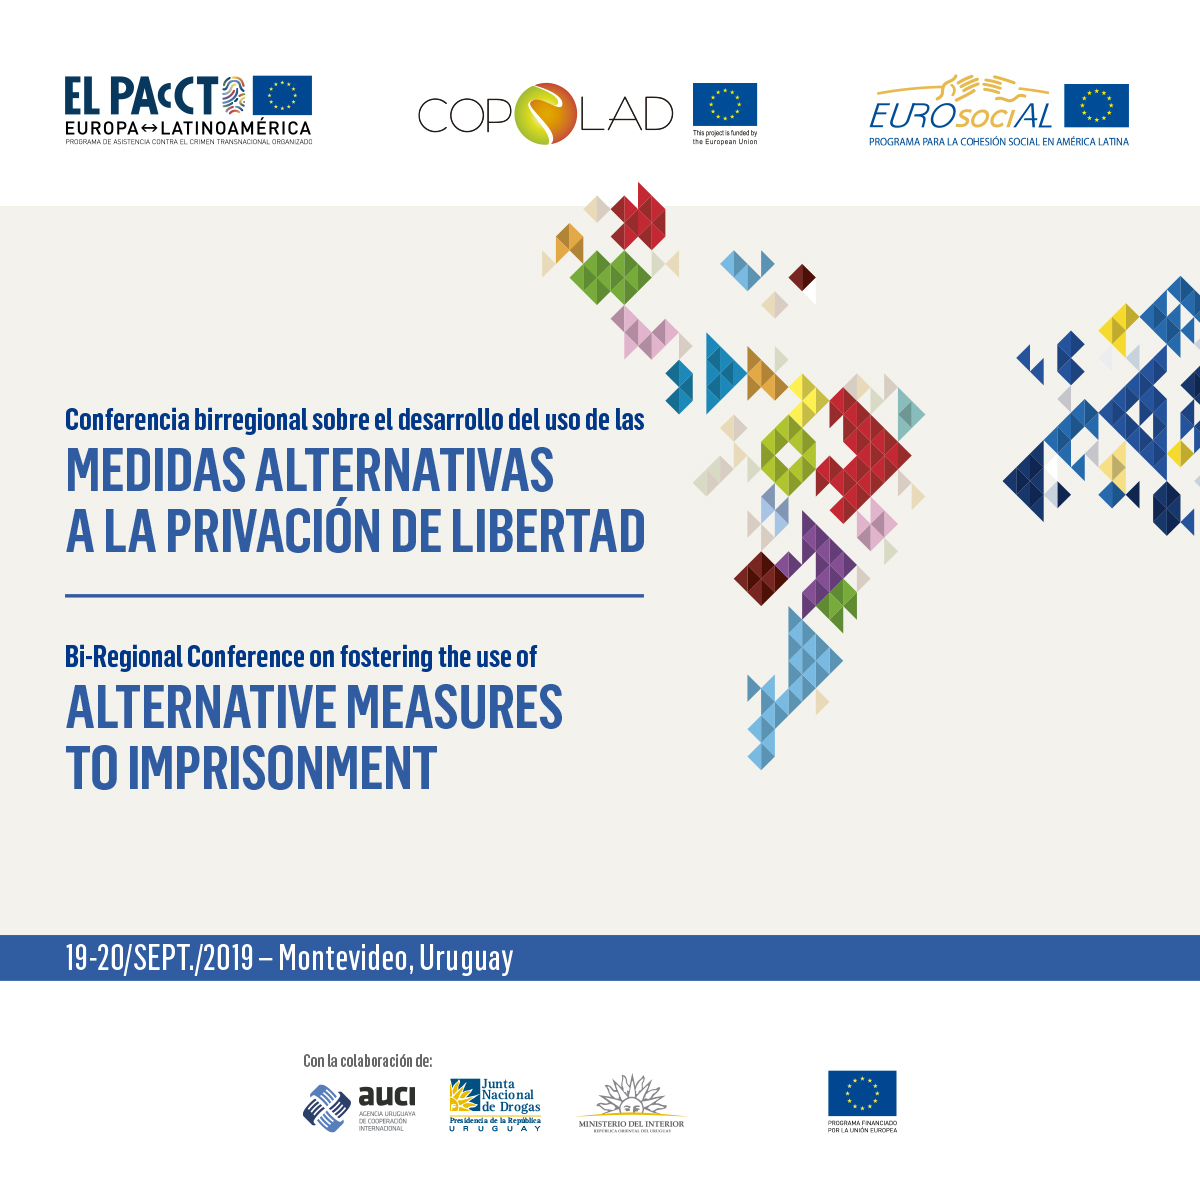 Bi-regional conference on fostering the use of alternative measures to imprisonment